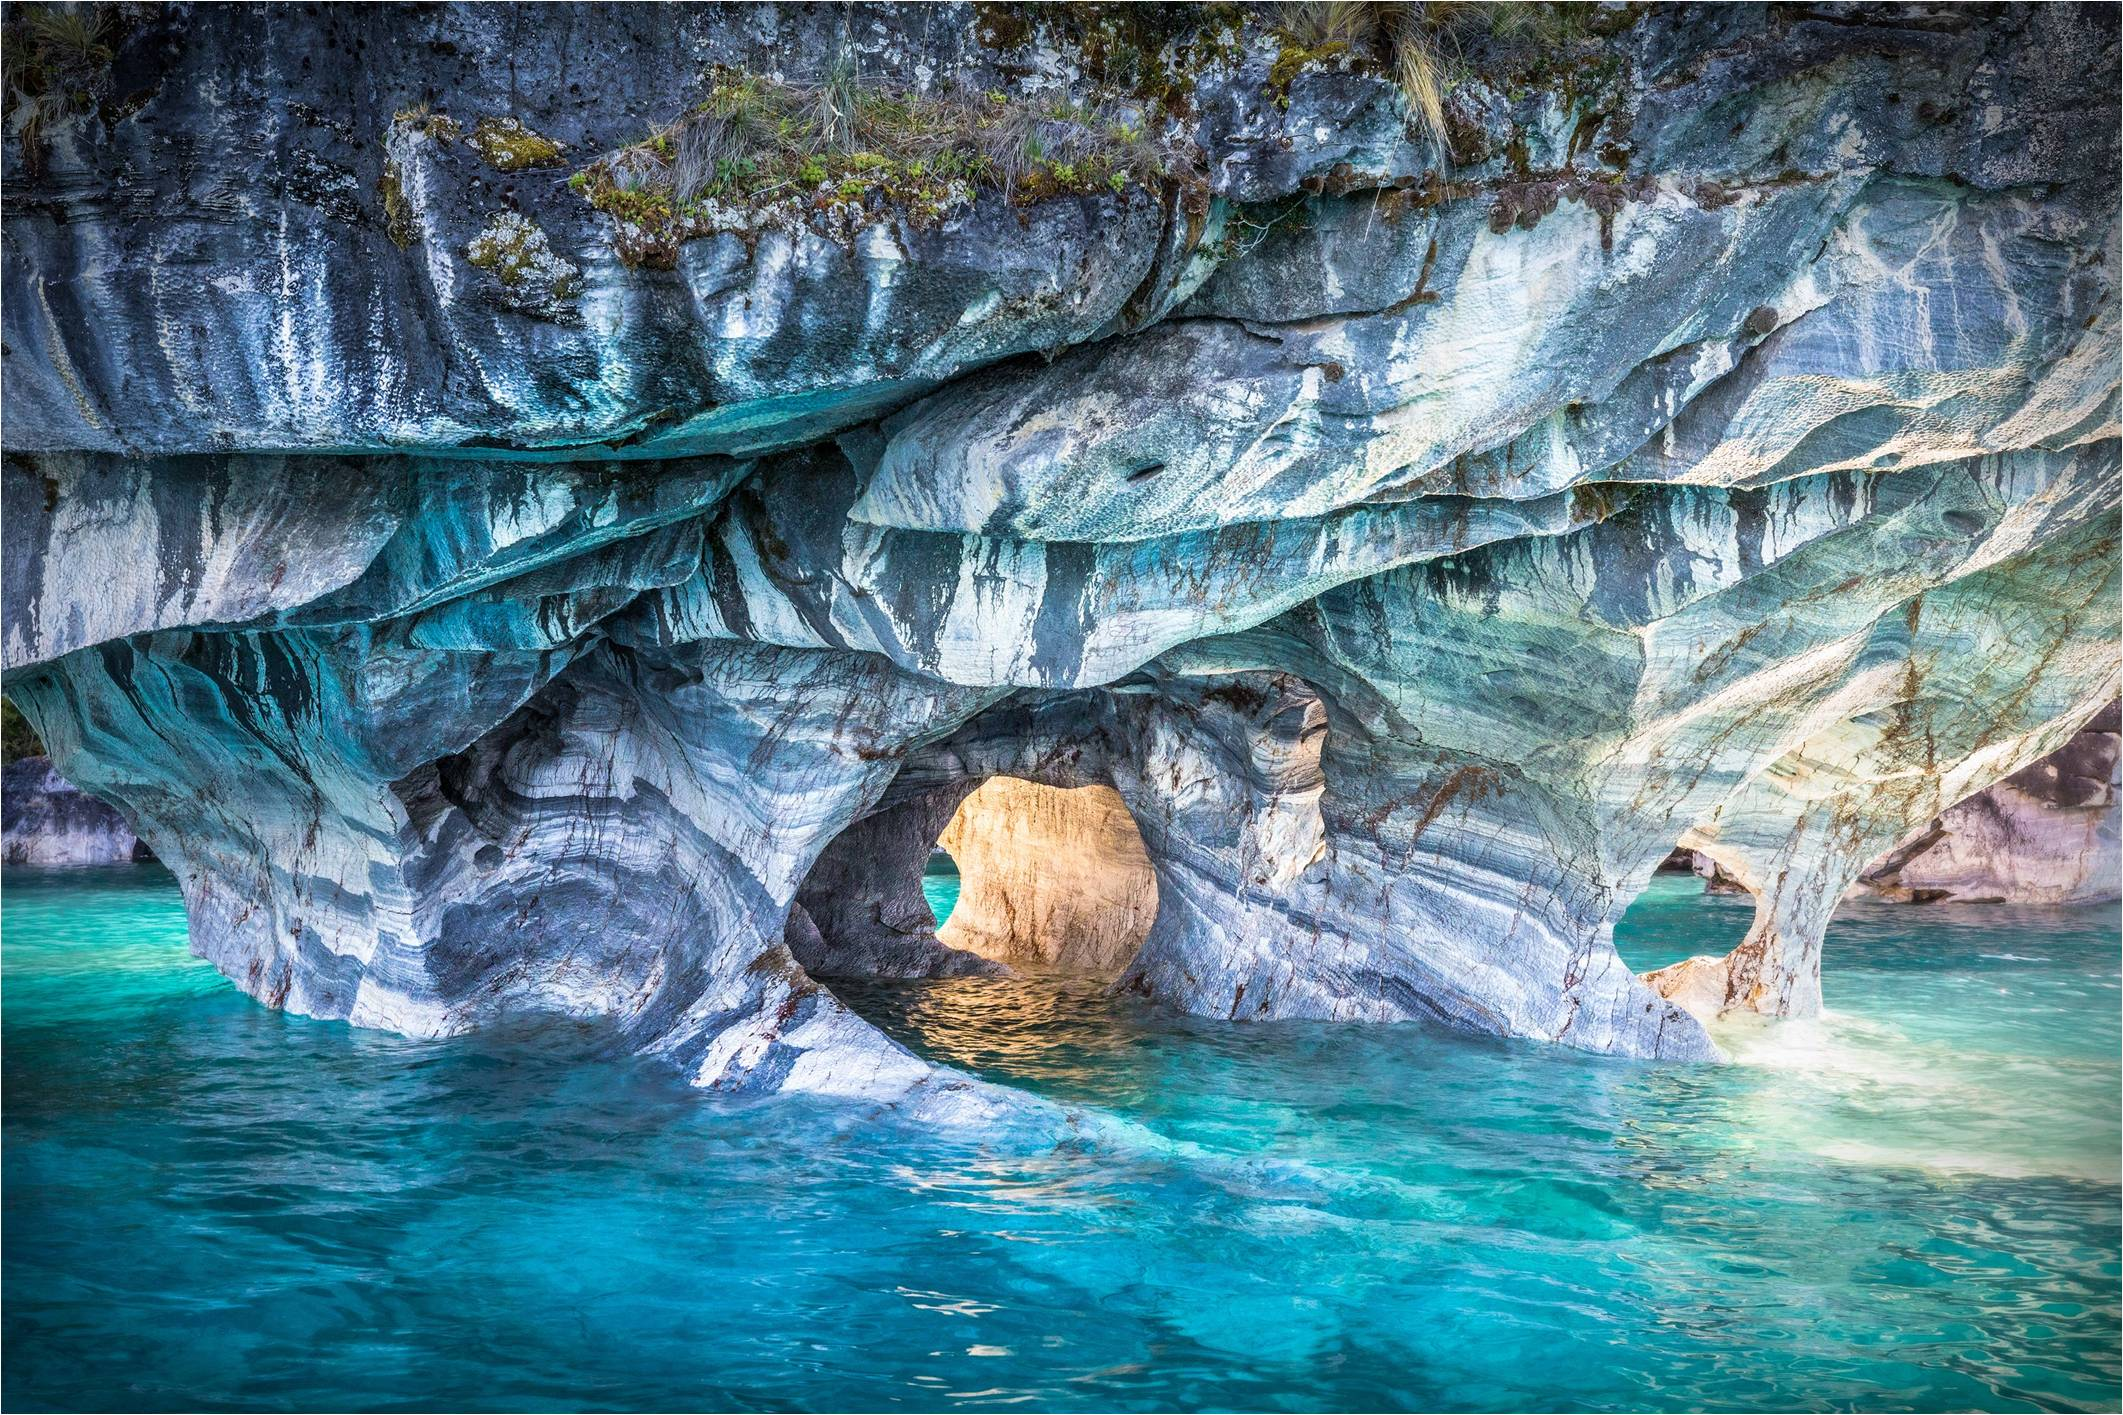 Chile Marble Caves Carrera Lake Beyond The Magazine